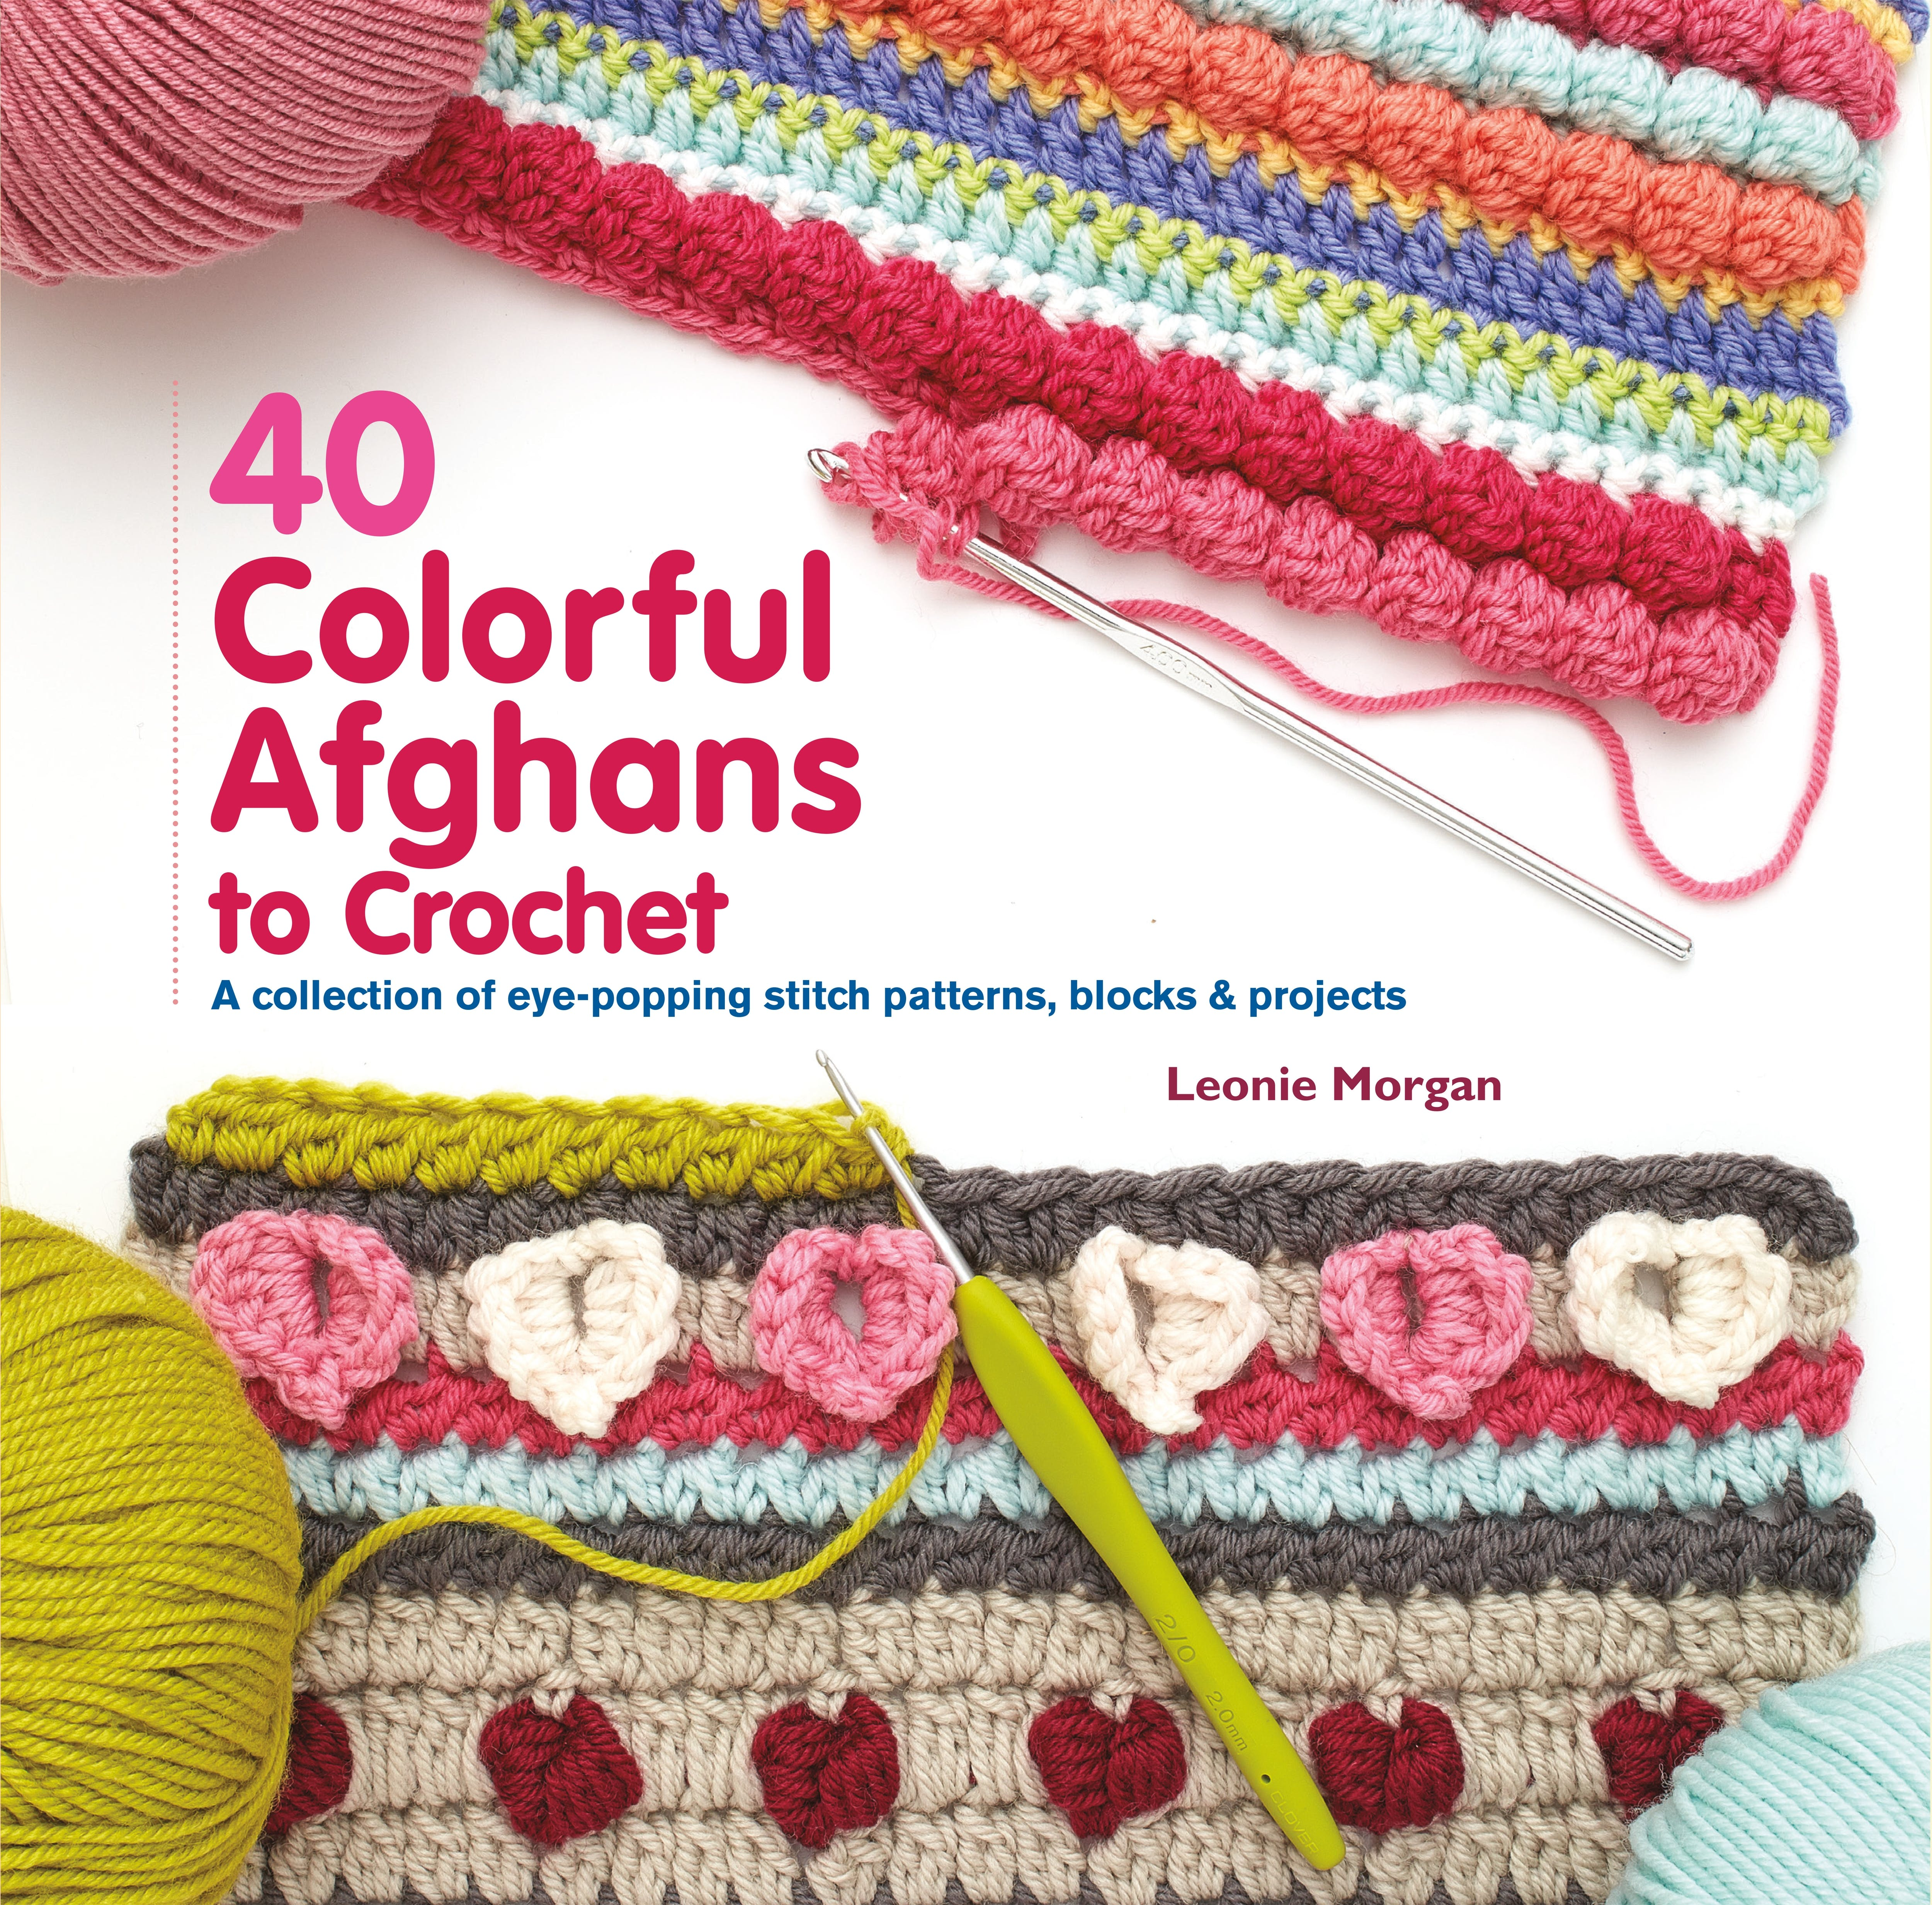 Image of 40 Colorful Afghans to Crochet